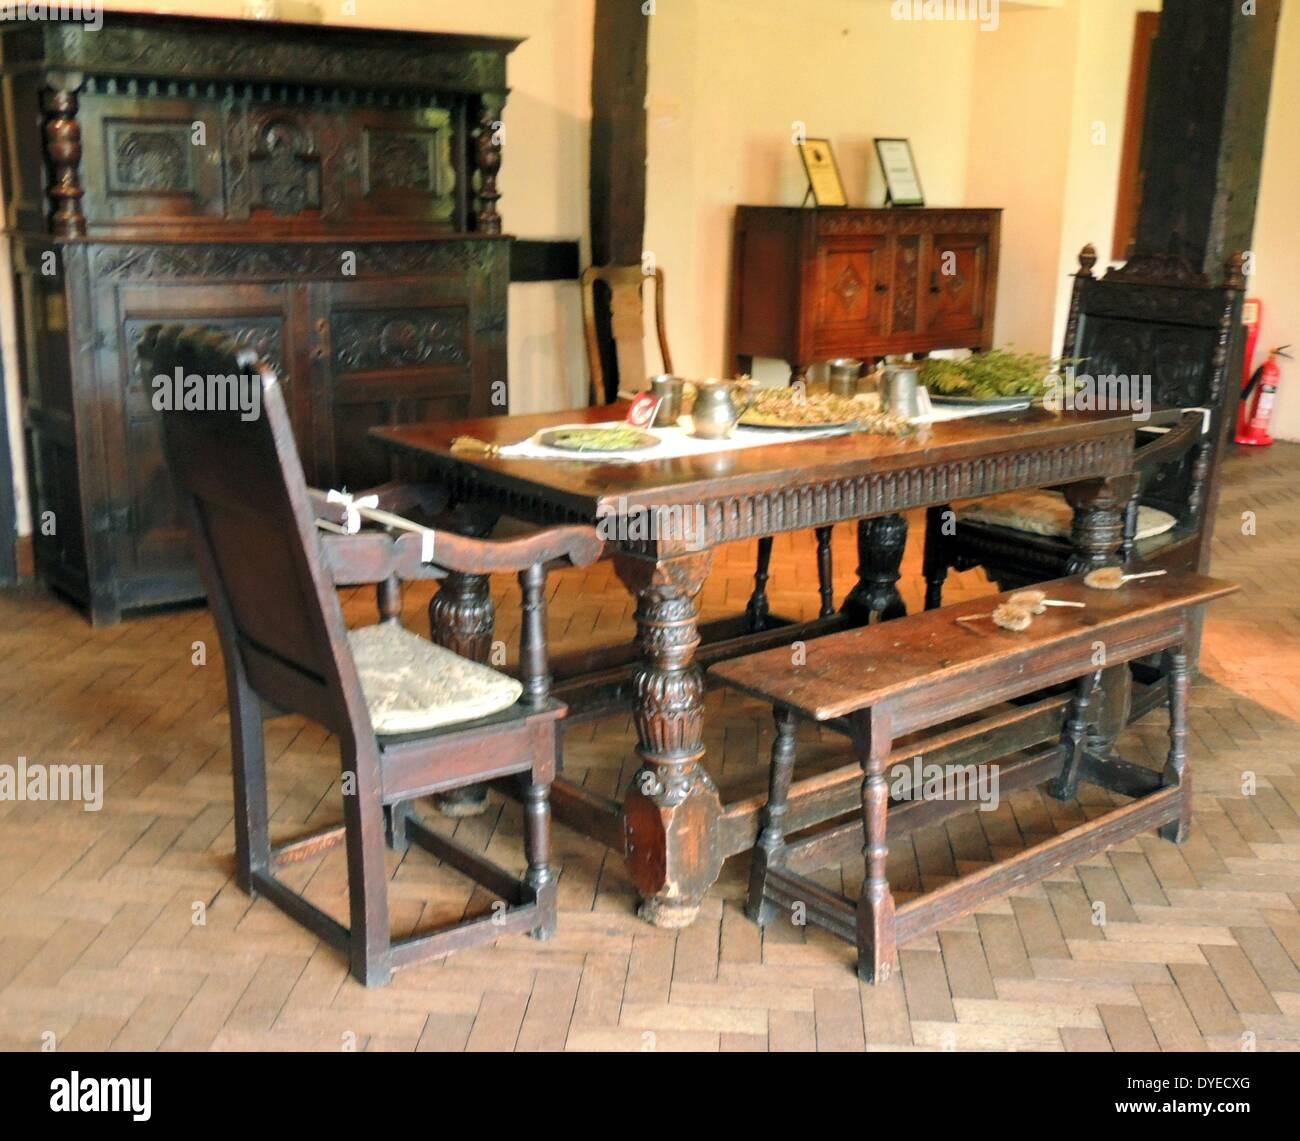 17th Century Wooden Dining Table And Room A.D.